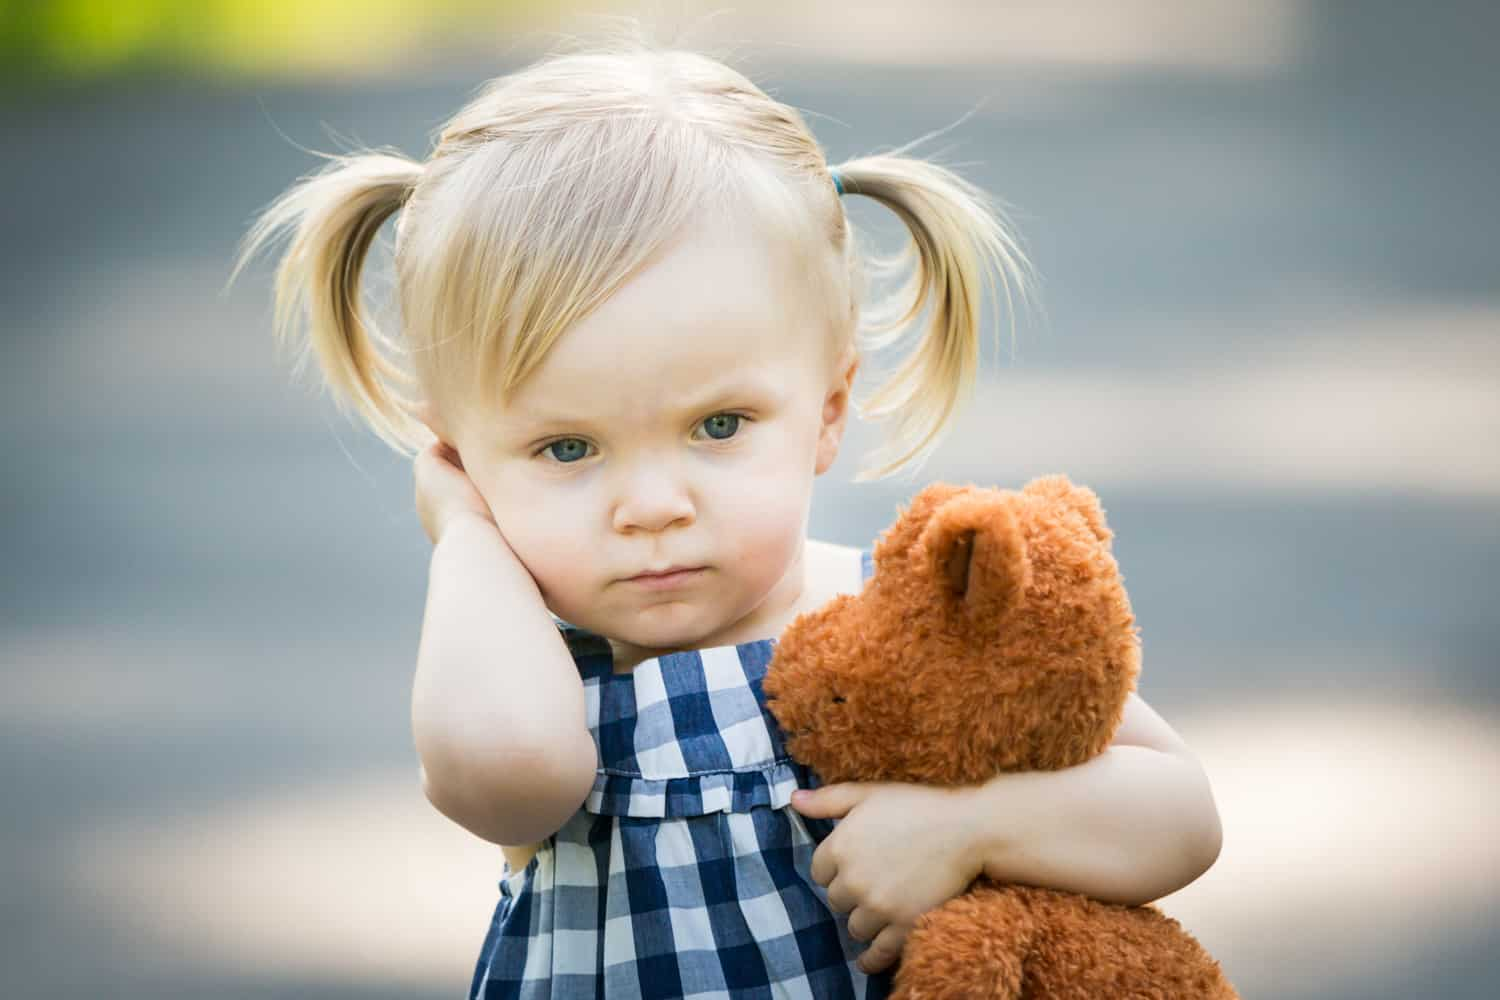 Little blond girl with pigtails holding stuffed animal